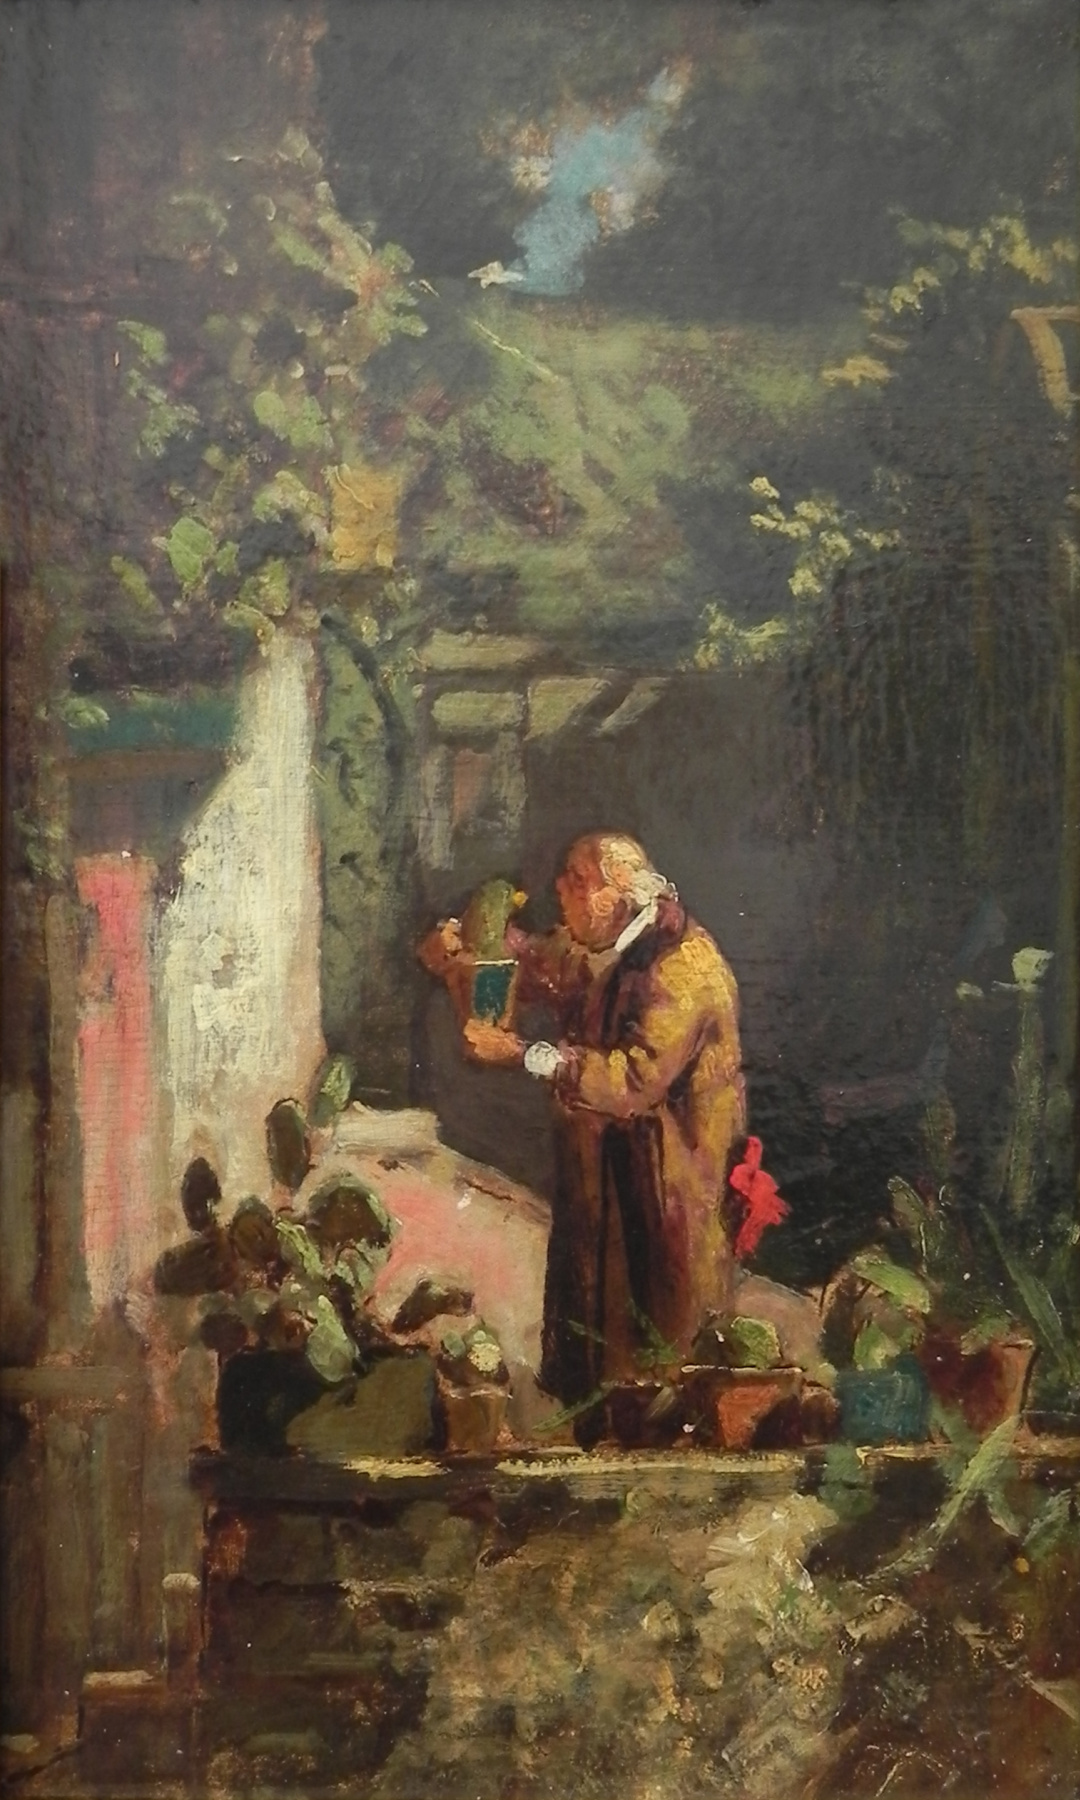 Karl Spitzweg. Mr. pastor is a lover of cacti